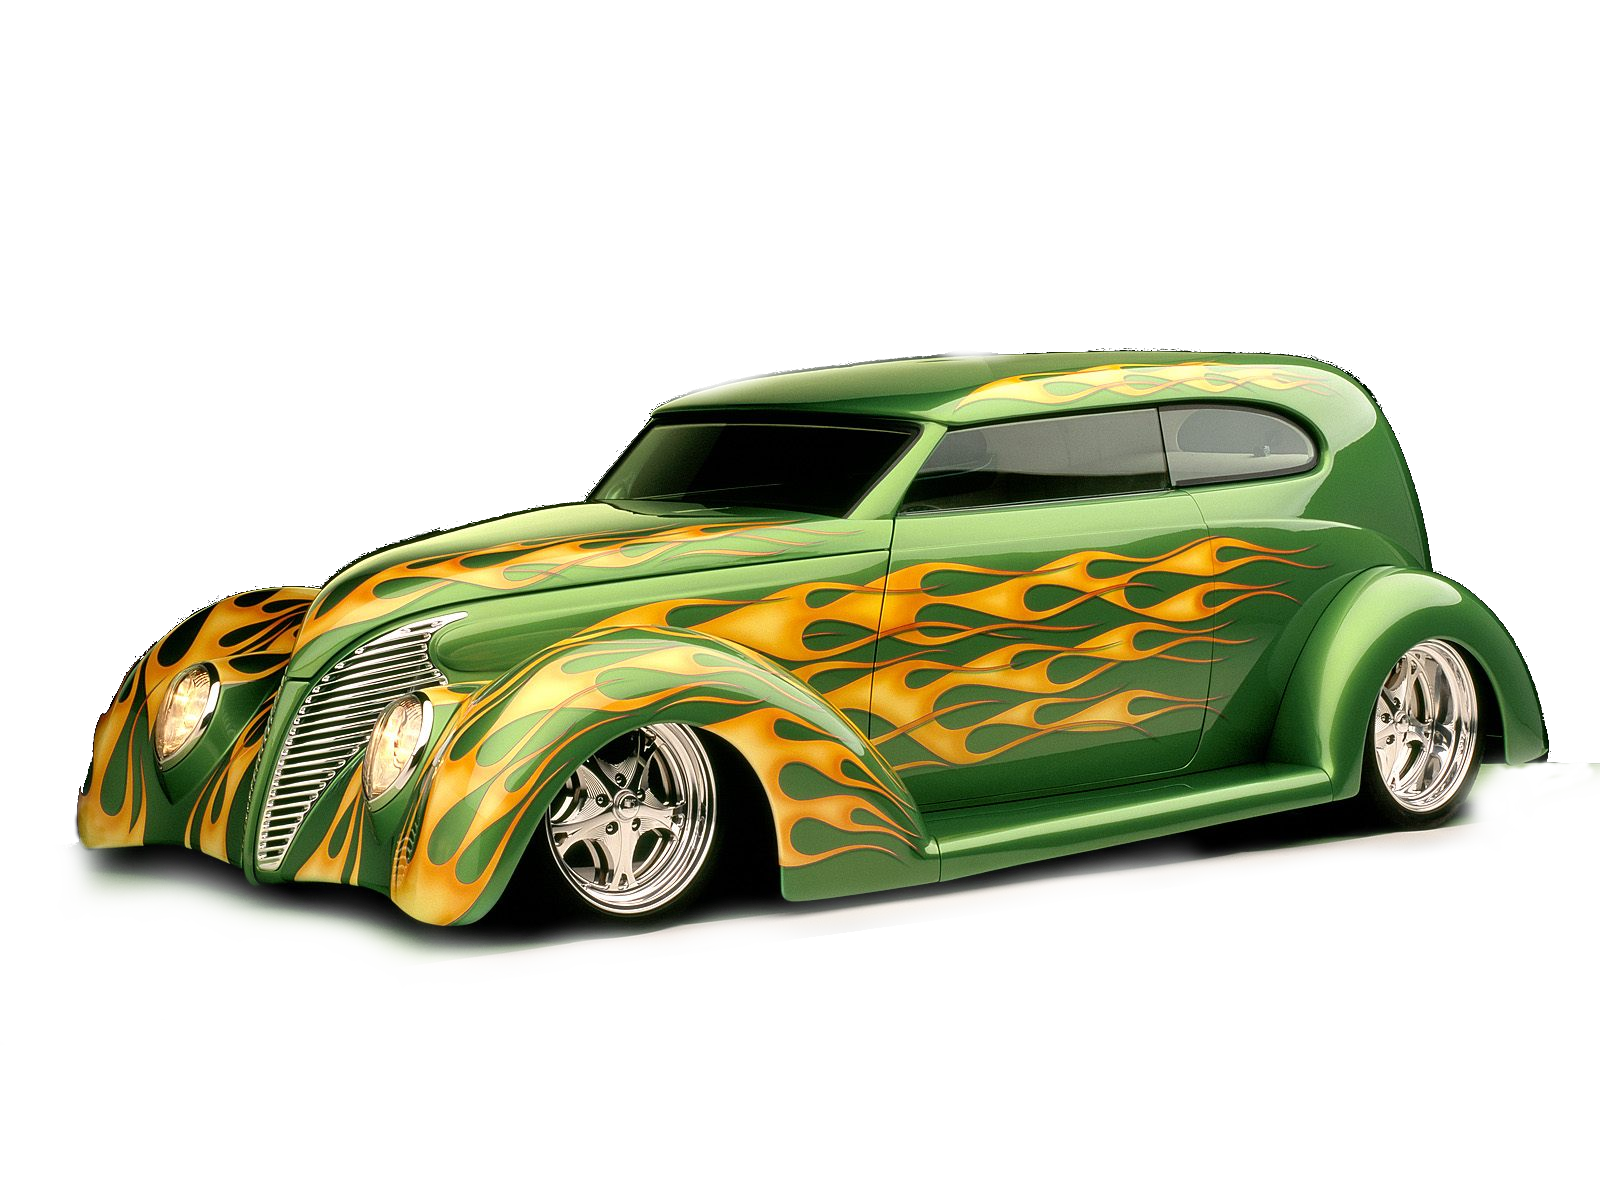 car png by singtolife on deviantart rh singtolife deviantart com Car Show Logo antique car show clipart